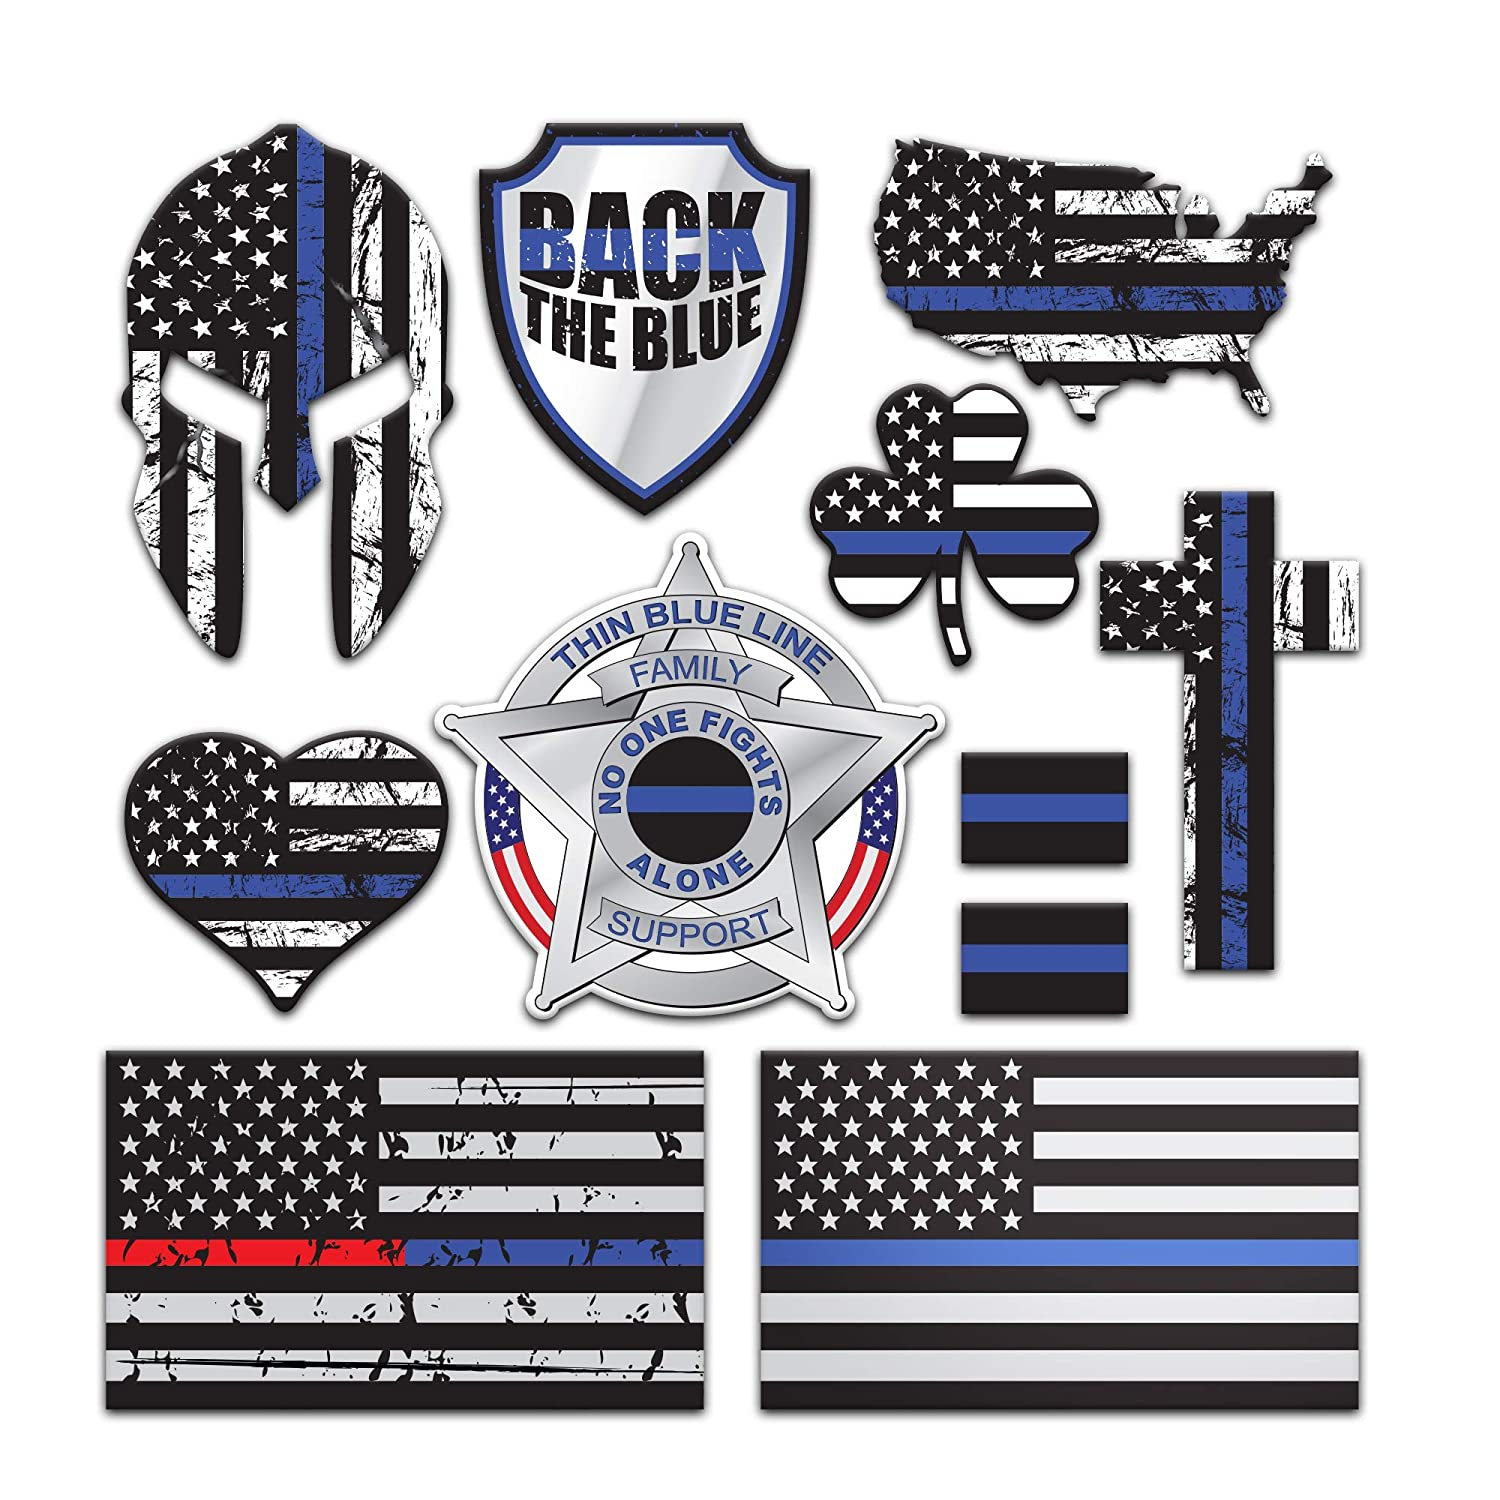 SpeedSquare Tools 11 Pack Police Thin Blue Line Stickers | 100% Vinyl | Proudly Made in USA Quality Decals for Patrol Car Truck Jeep HydroFlask Laptop Gear | Display Your American Flag